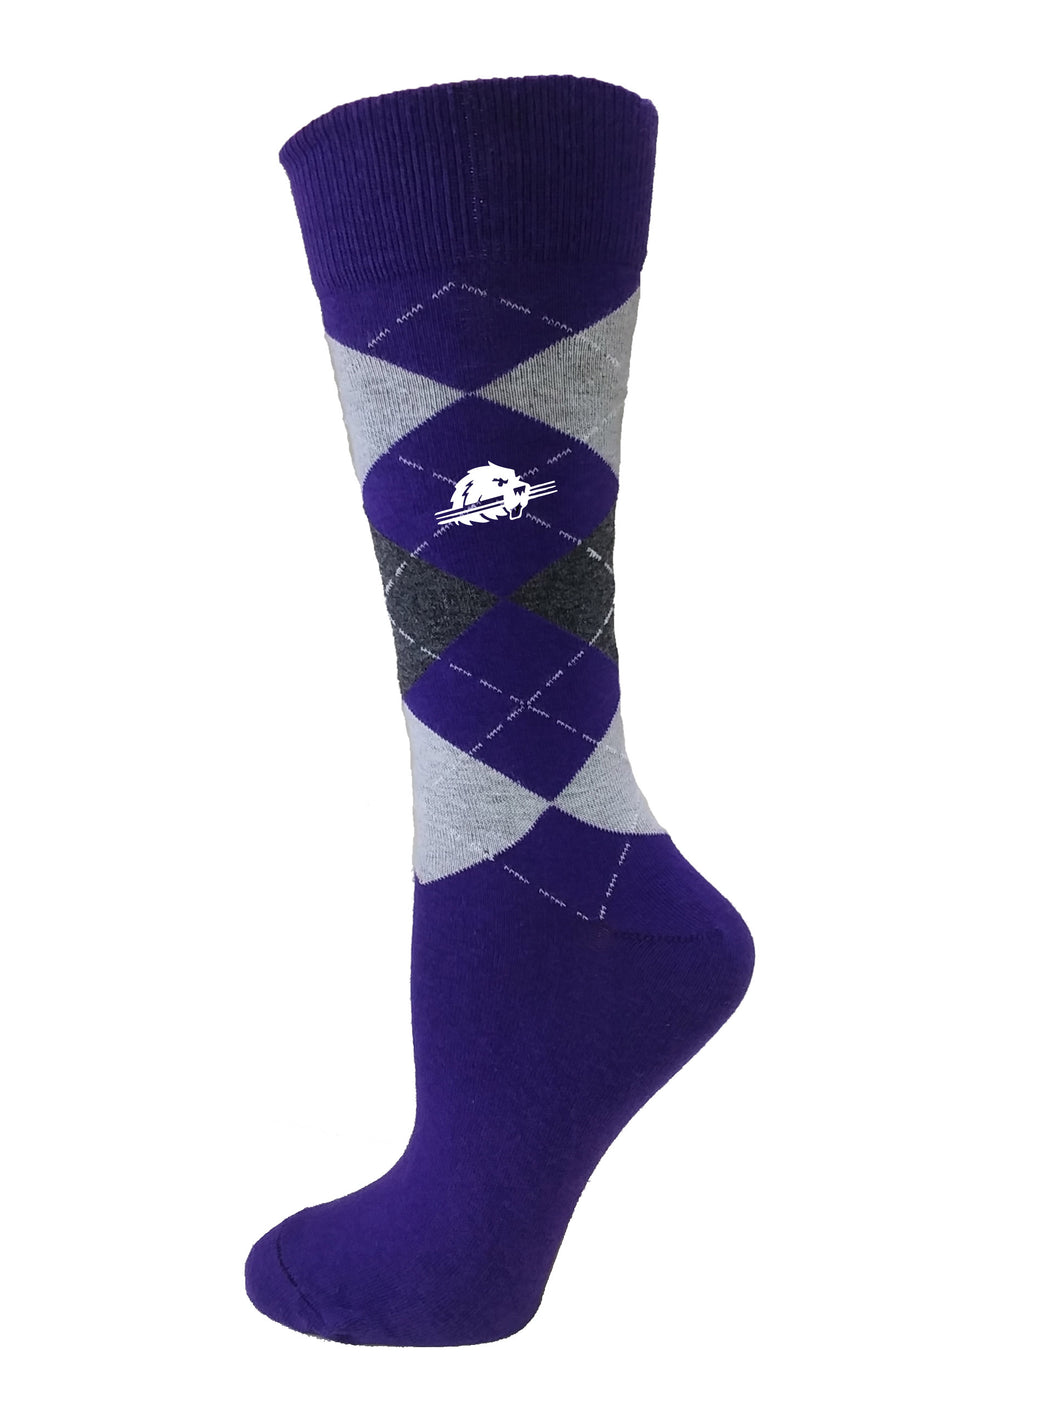 Argyle Socks, Purple